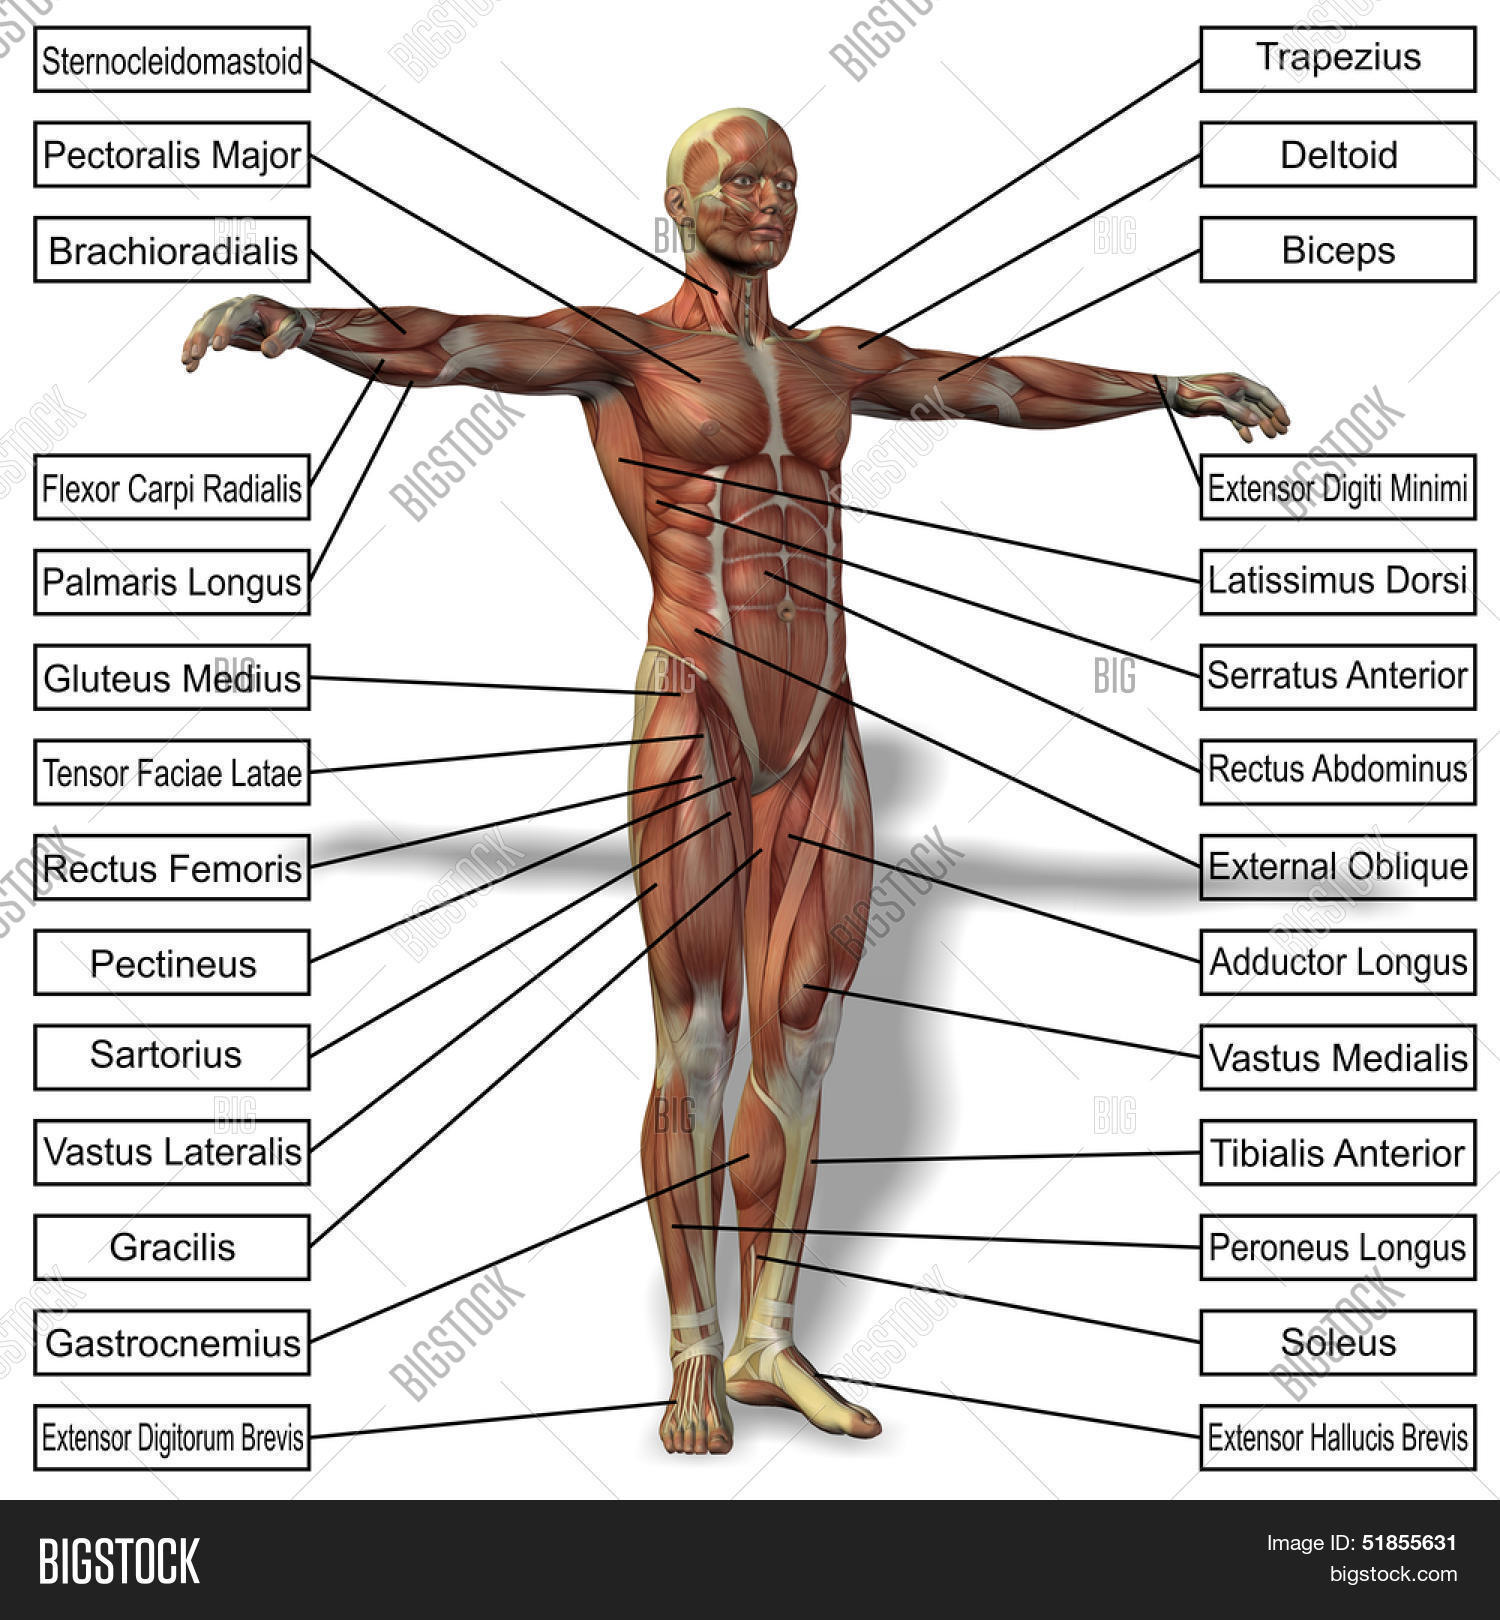 3d Male Human Anatomy Image Photo Free Trial Bigstock